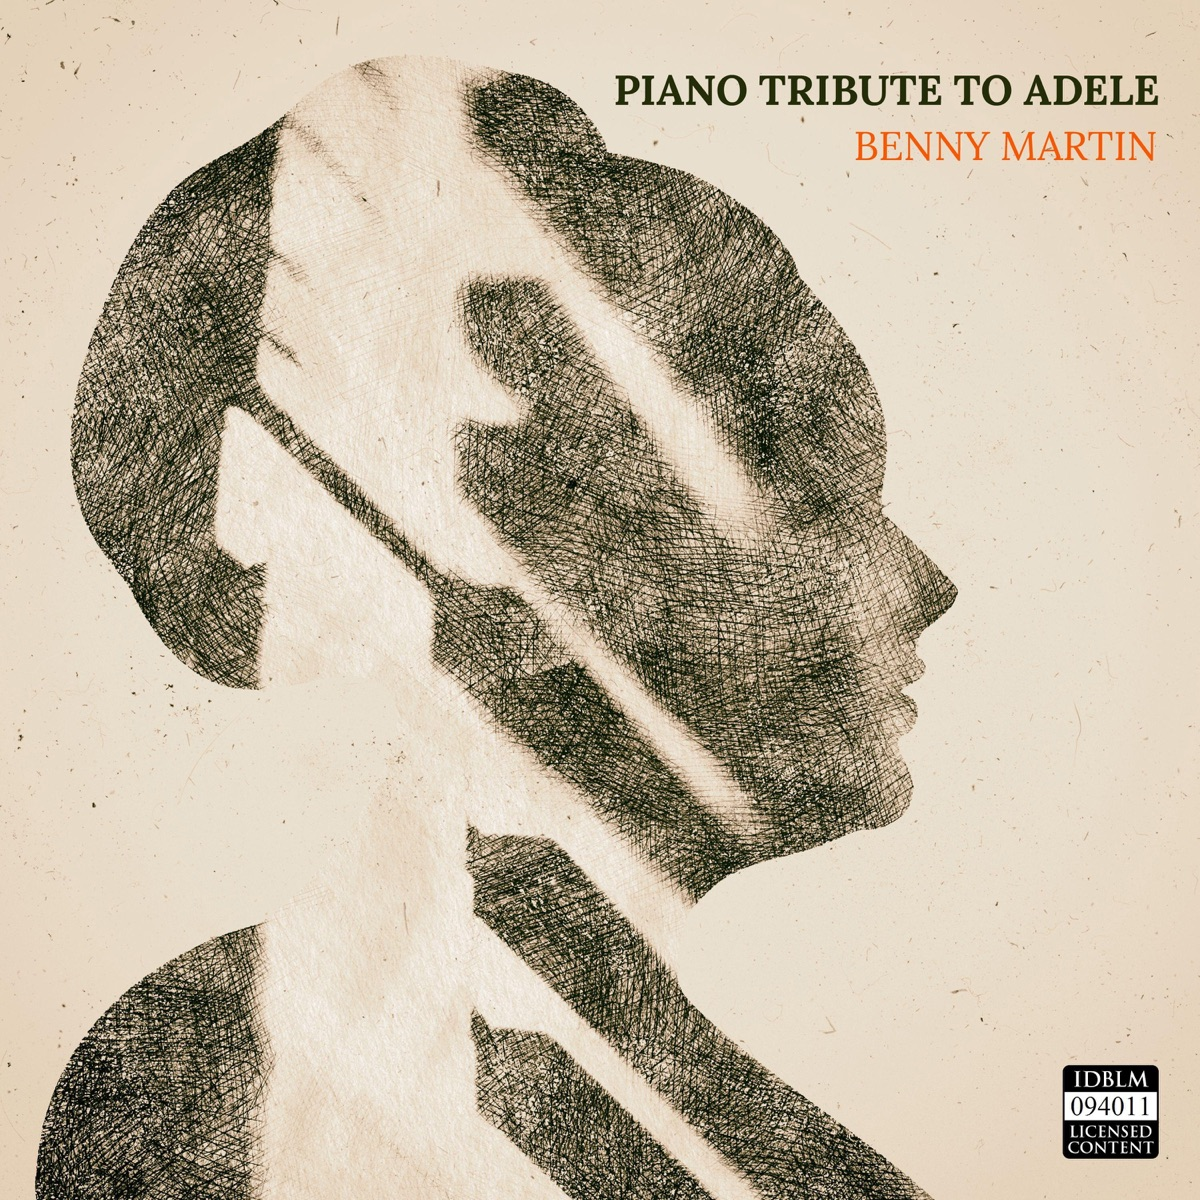 Piano Tribute to Adele Album Cover by Benny Martin